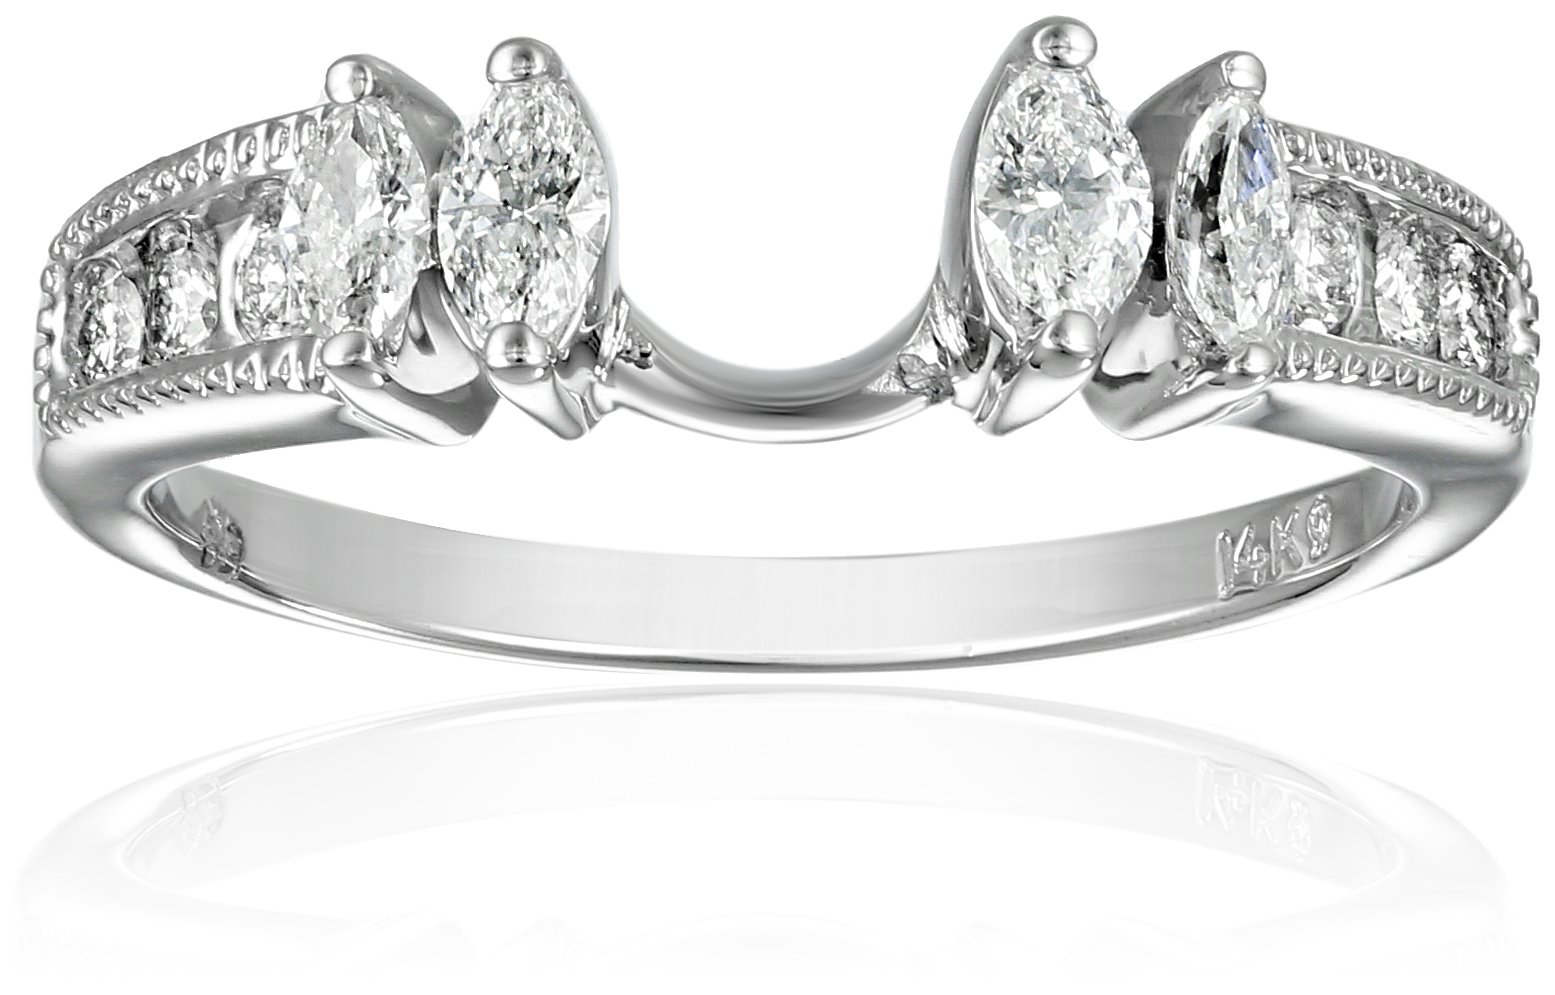 14k White Gold Round and Marquise Diamond Solitaire Engagement Ring Enhancer (1/2 carat, H-I Color, I1-I2 Clarity), Size 7